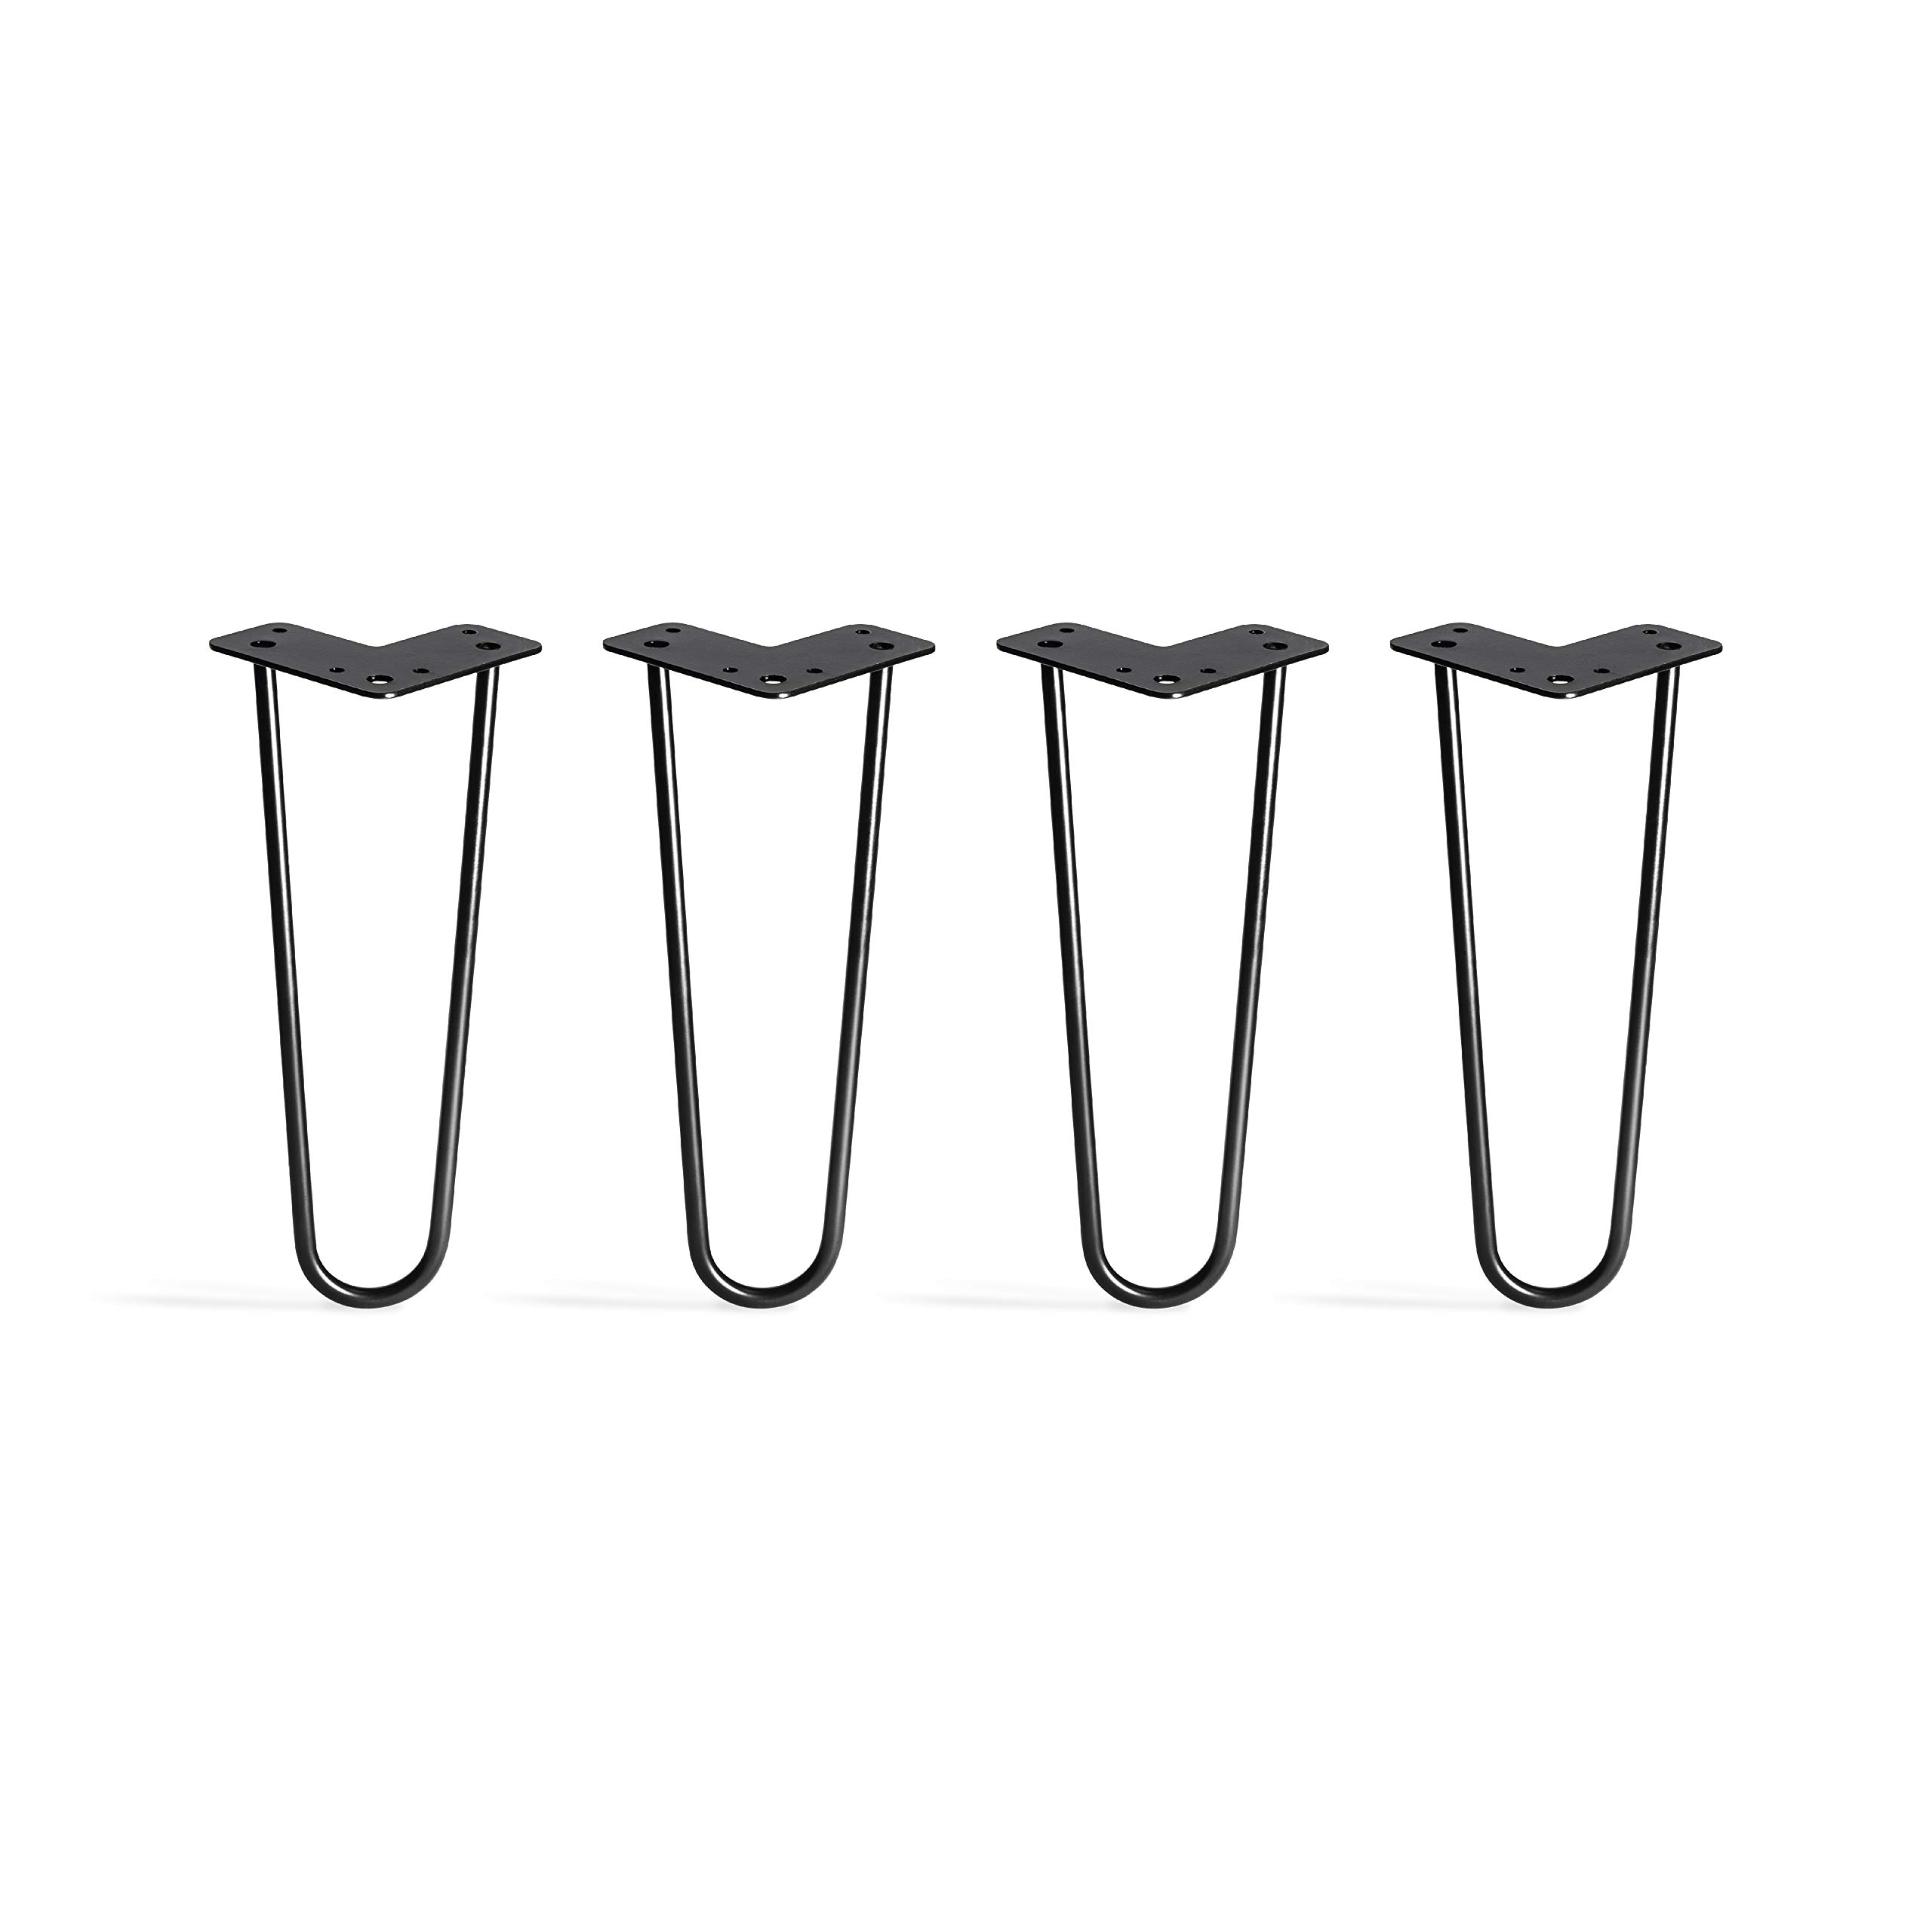 TEN49 Heavy Duty Hairpin Table Legs 12 inches / Industrial / Set of 4 Table Legs / Simple Installation / DIY / Black Coated